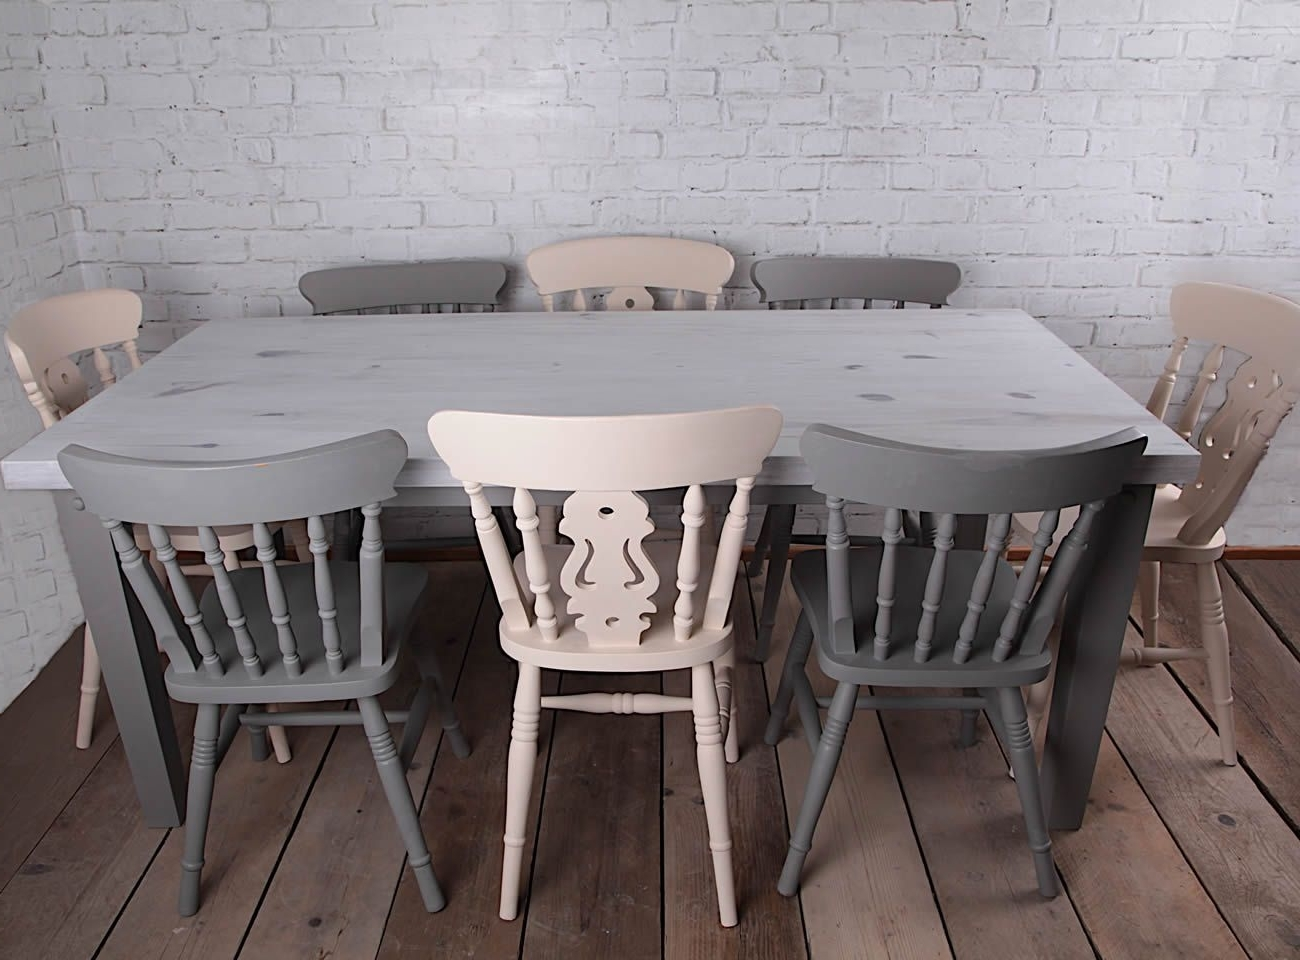 Most Recent Mesa Y Sillas Pintadas En Blancos Y Grises #autenticochalkpaint Y Throughout Shabby Dining Tables And Chairs (View 6 of 25)